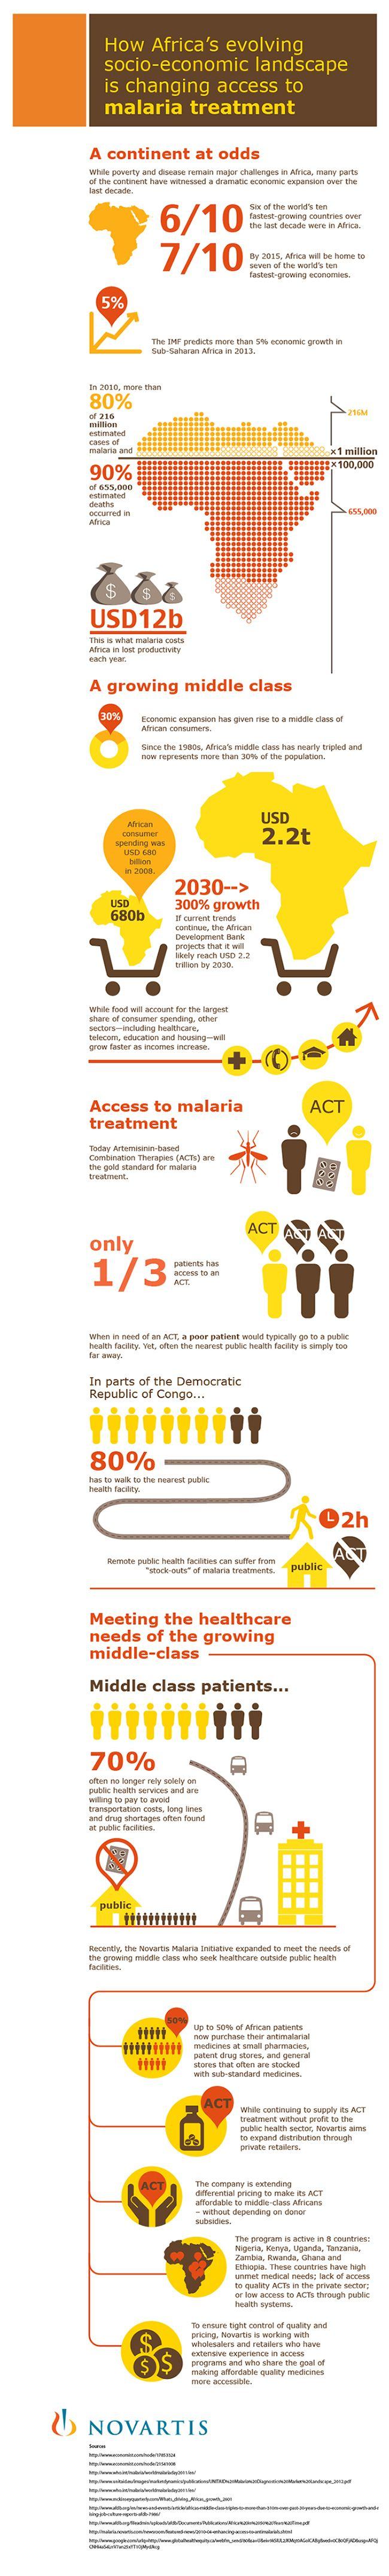 Infographics: How Africa's evolving socio-economic landscape, is changing access to malaria treatment